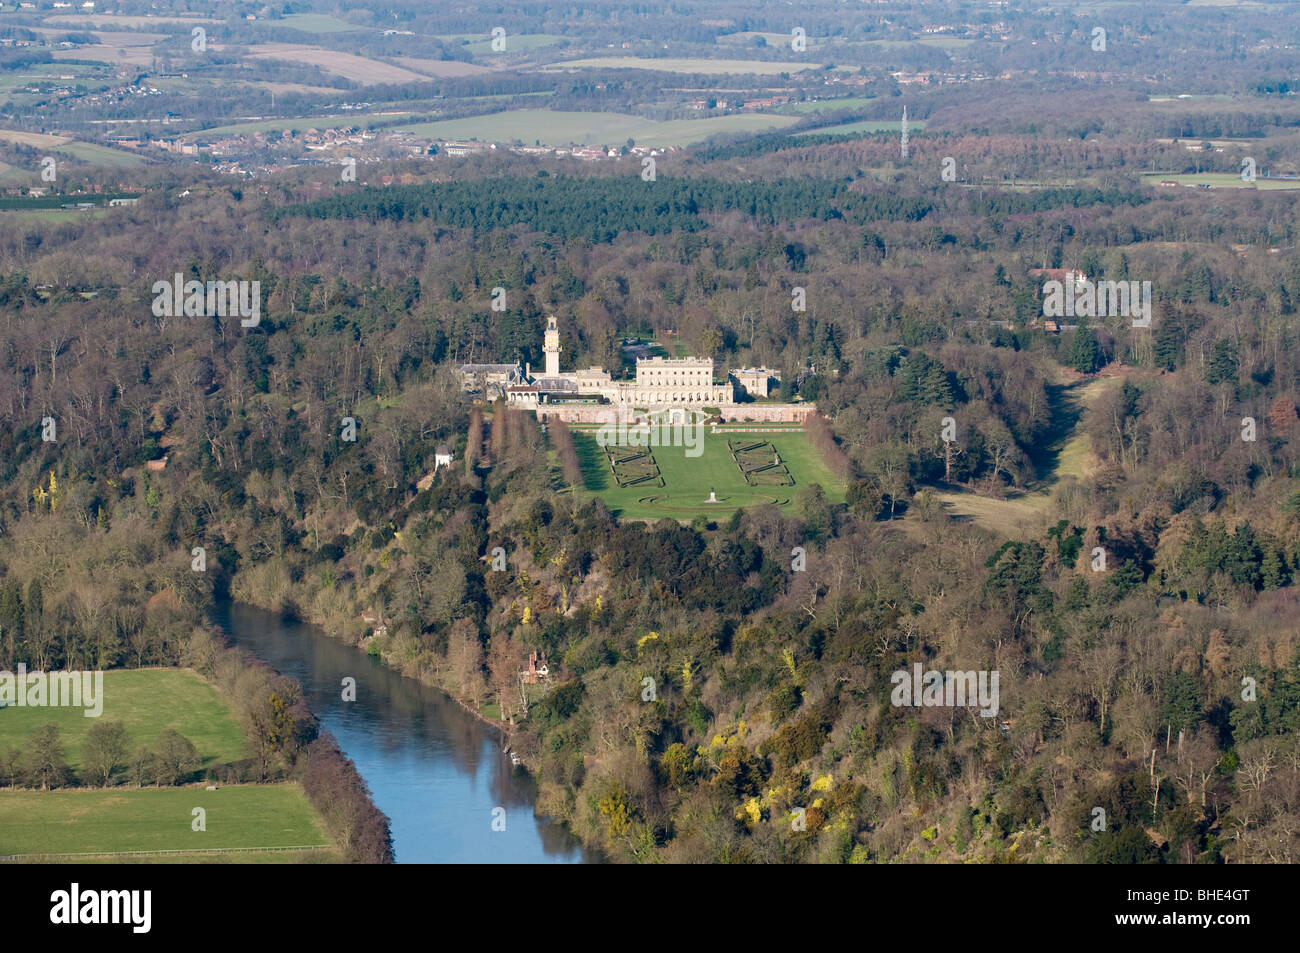 Cliveden House, Taplow, Berkshire.  Aerial view. - Stock Image